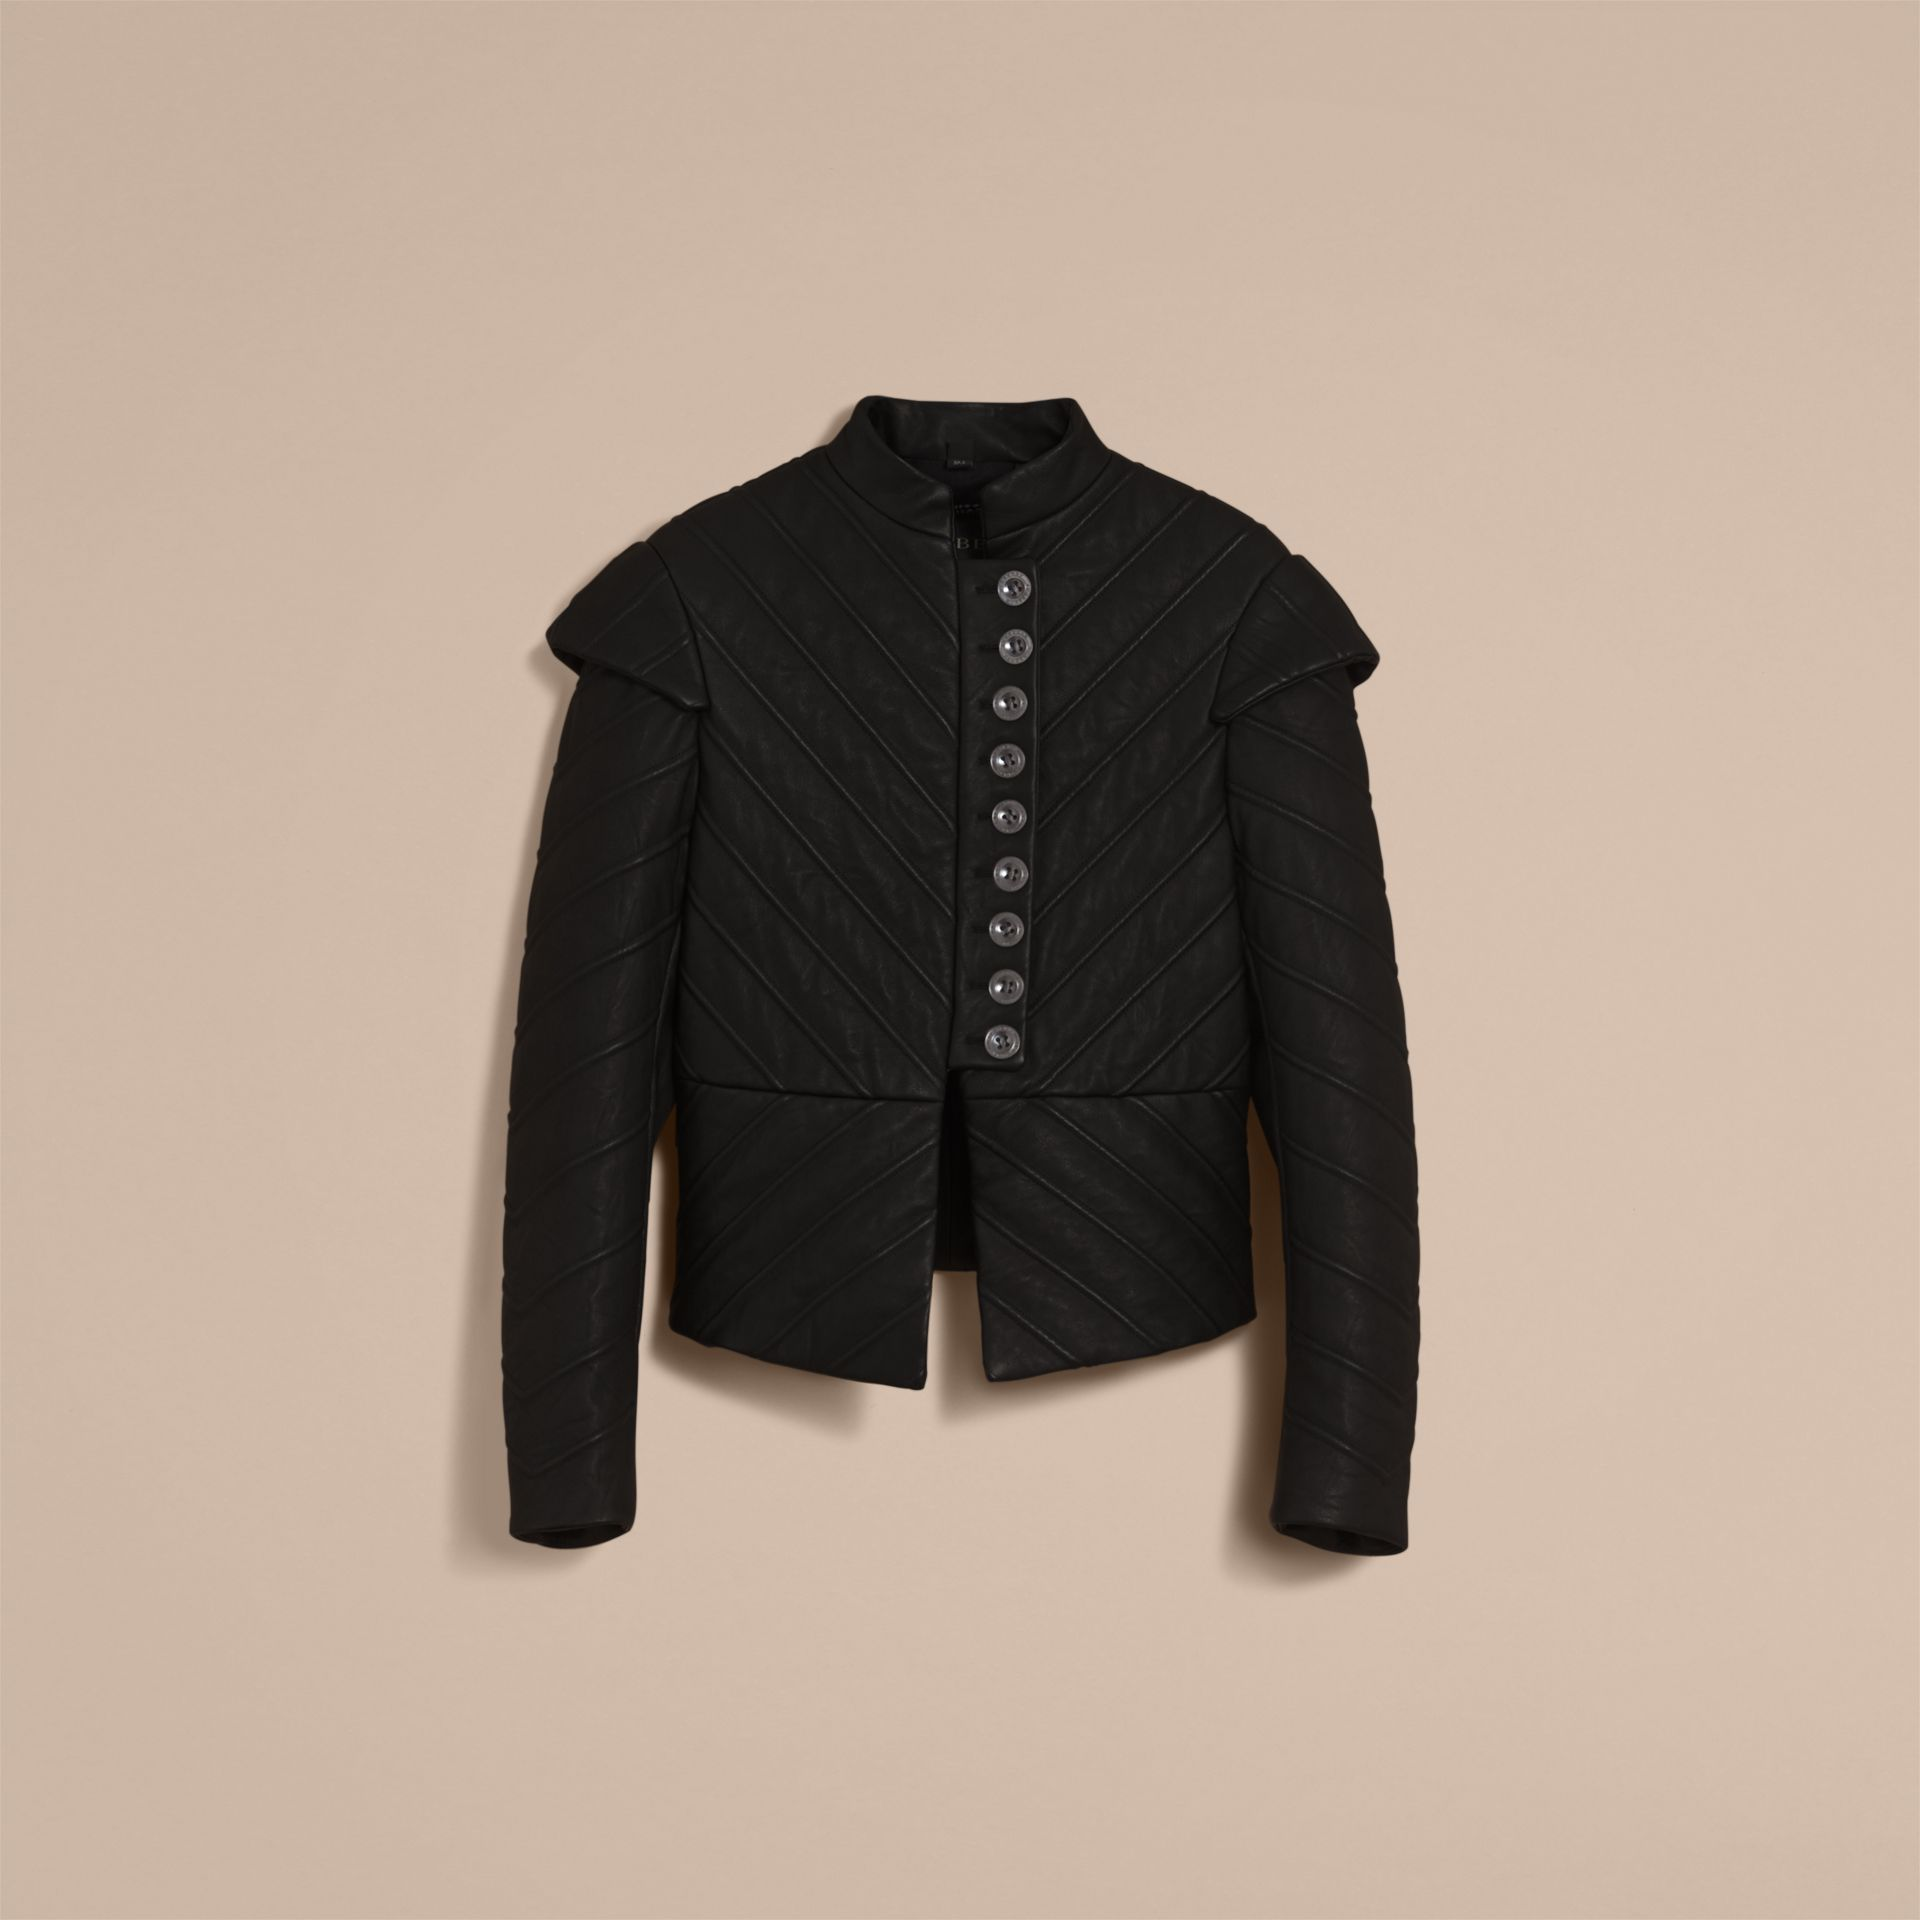 Quilted Lambskin Military-inspired Jacket - Women | Burberry - gallery image 4